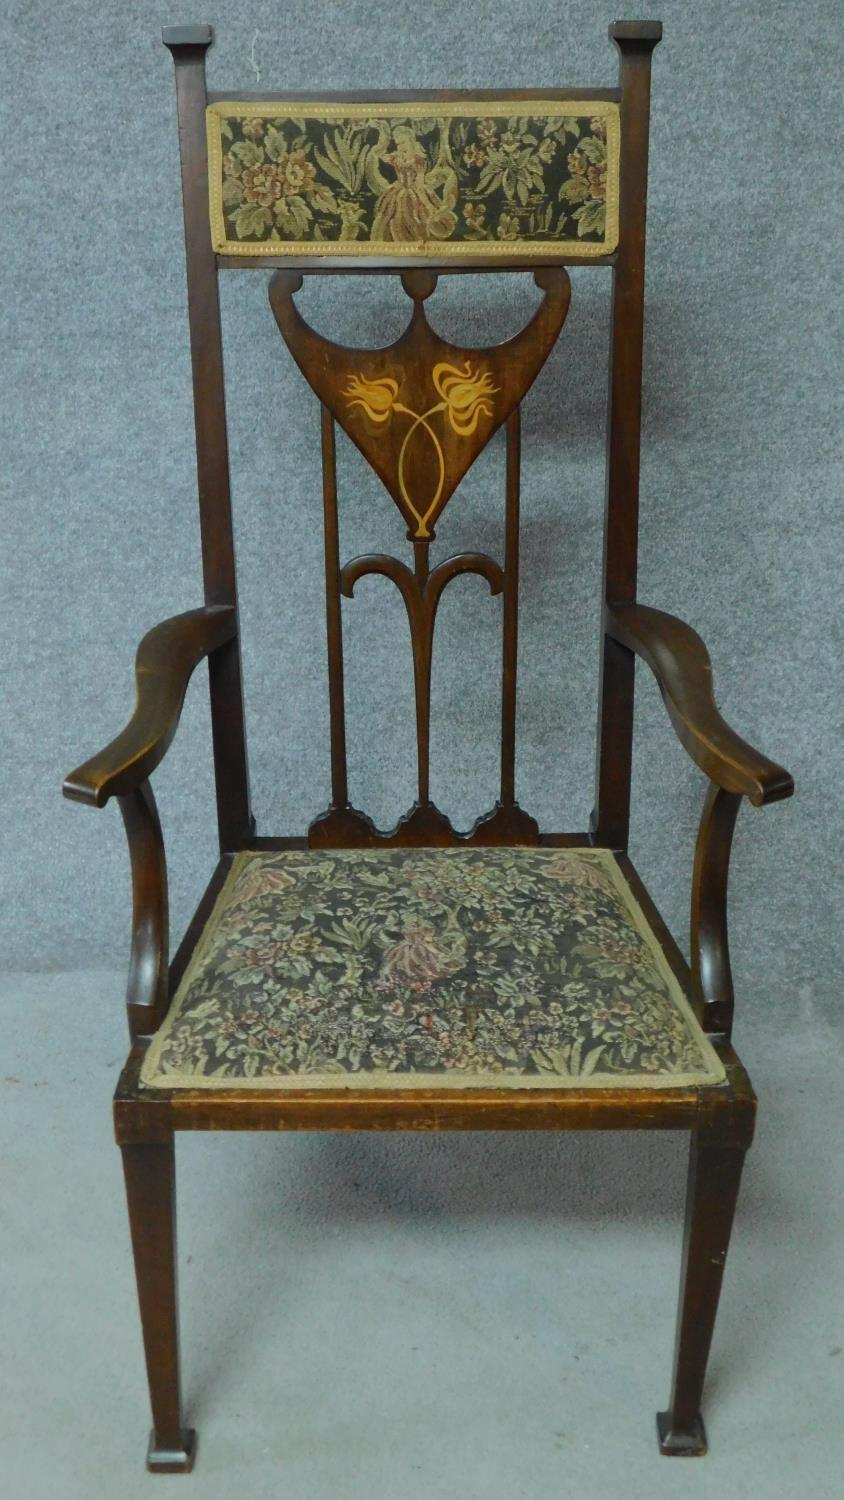 An Arts & Crafts mahogany and satinwood inlaid armchair with stylised motifs to the back splat in